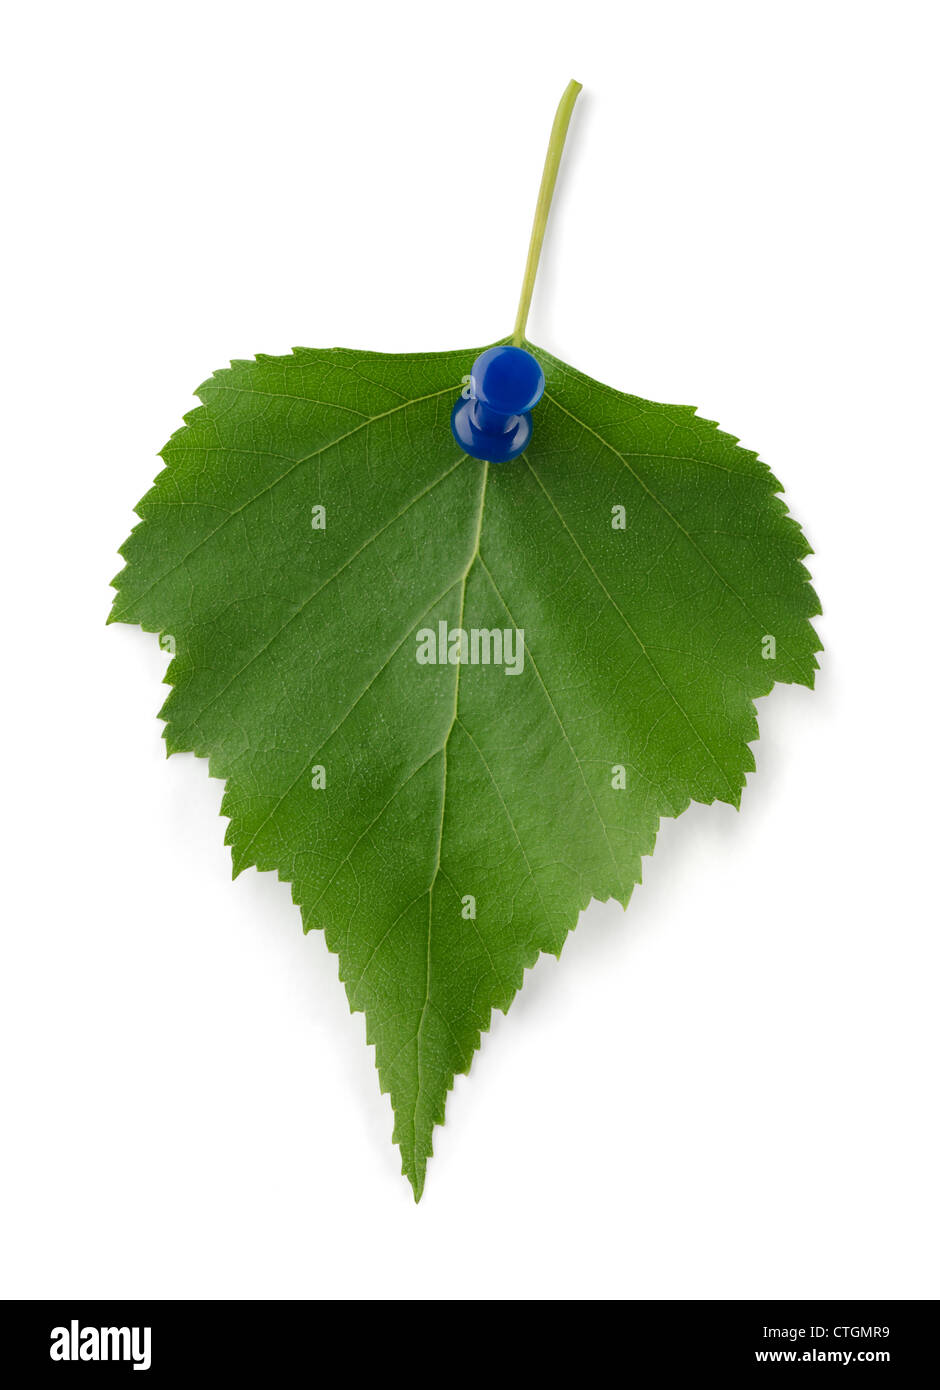 Green birch leaf reminder isolated on white - Stock Image